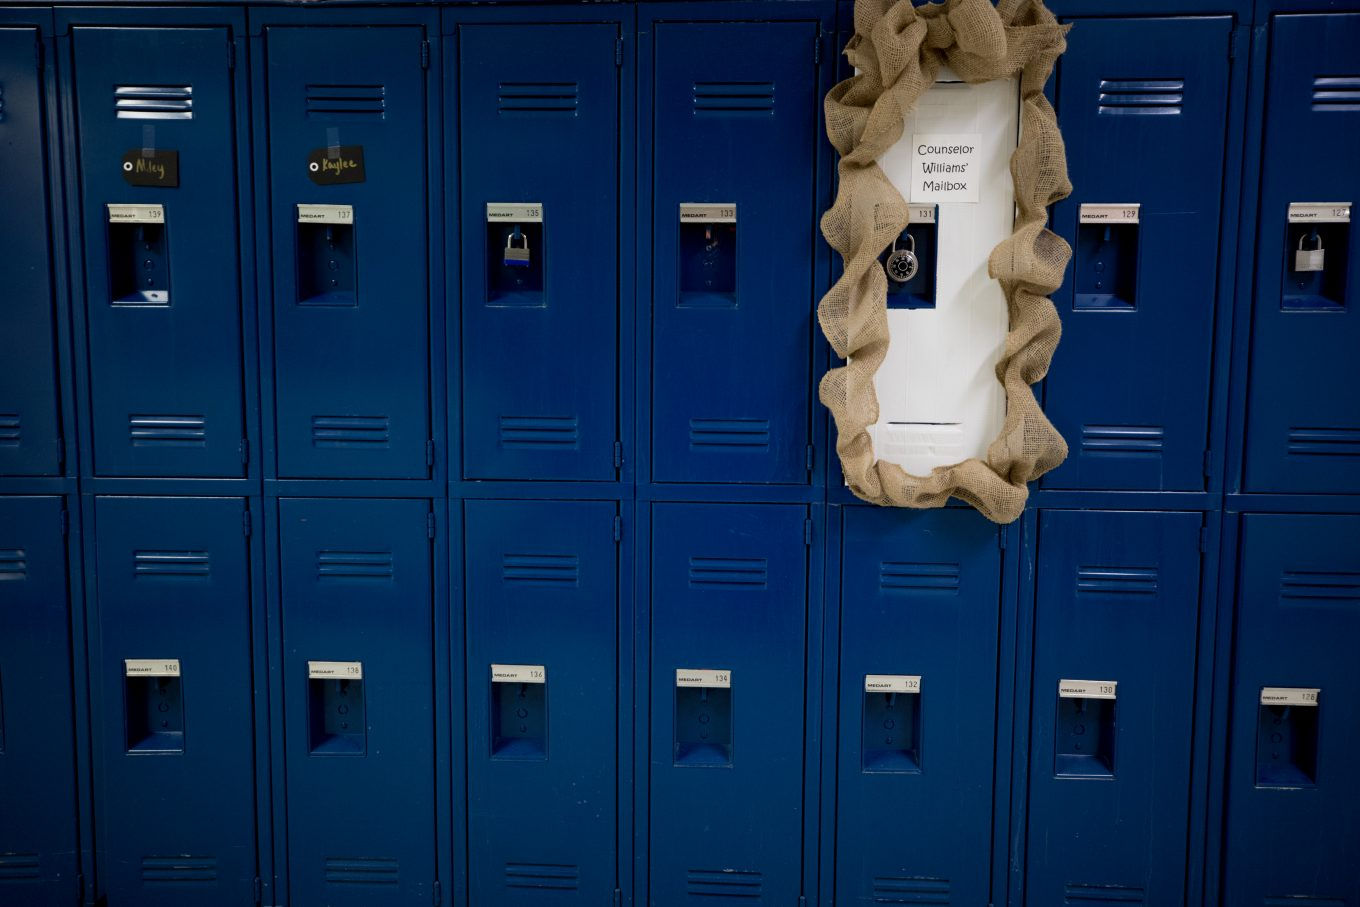 locker where students can send her private notes.